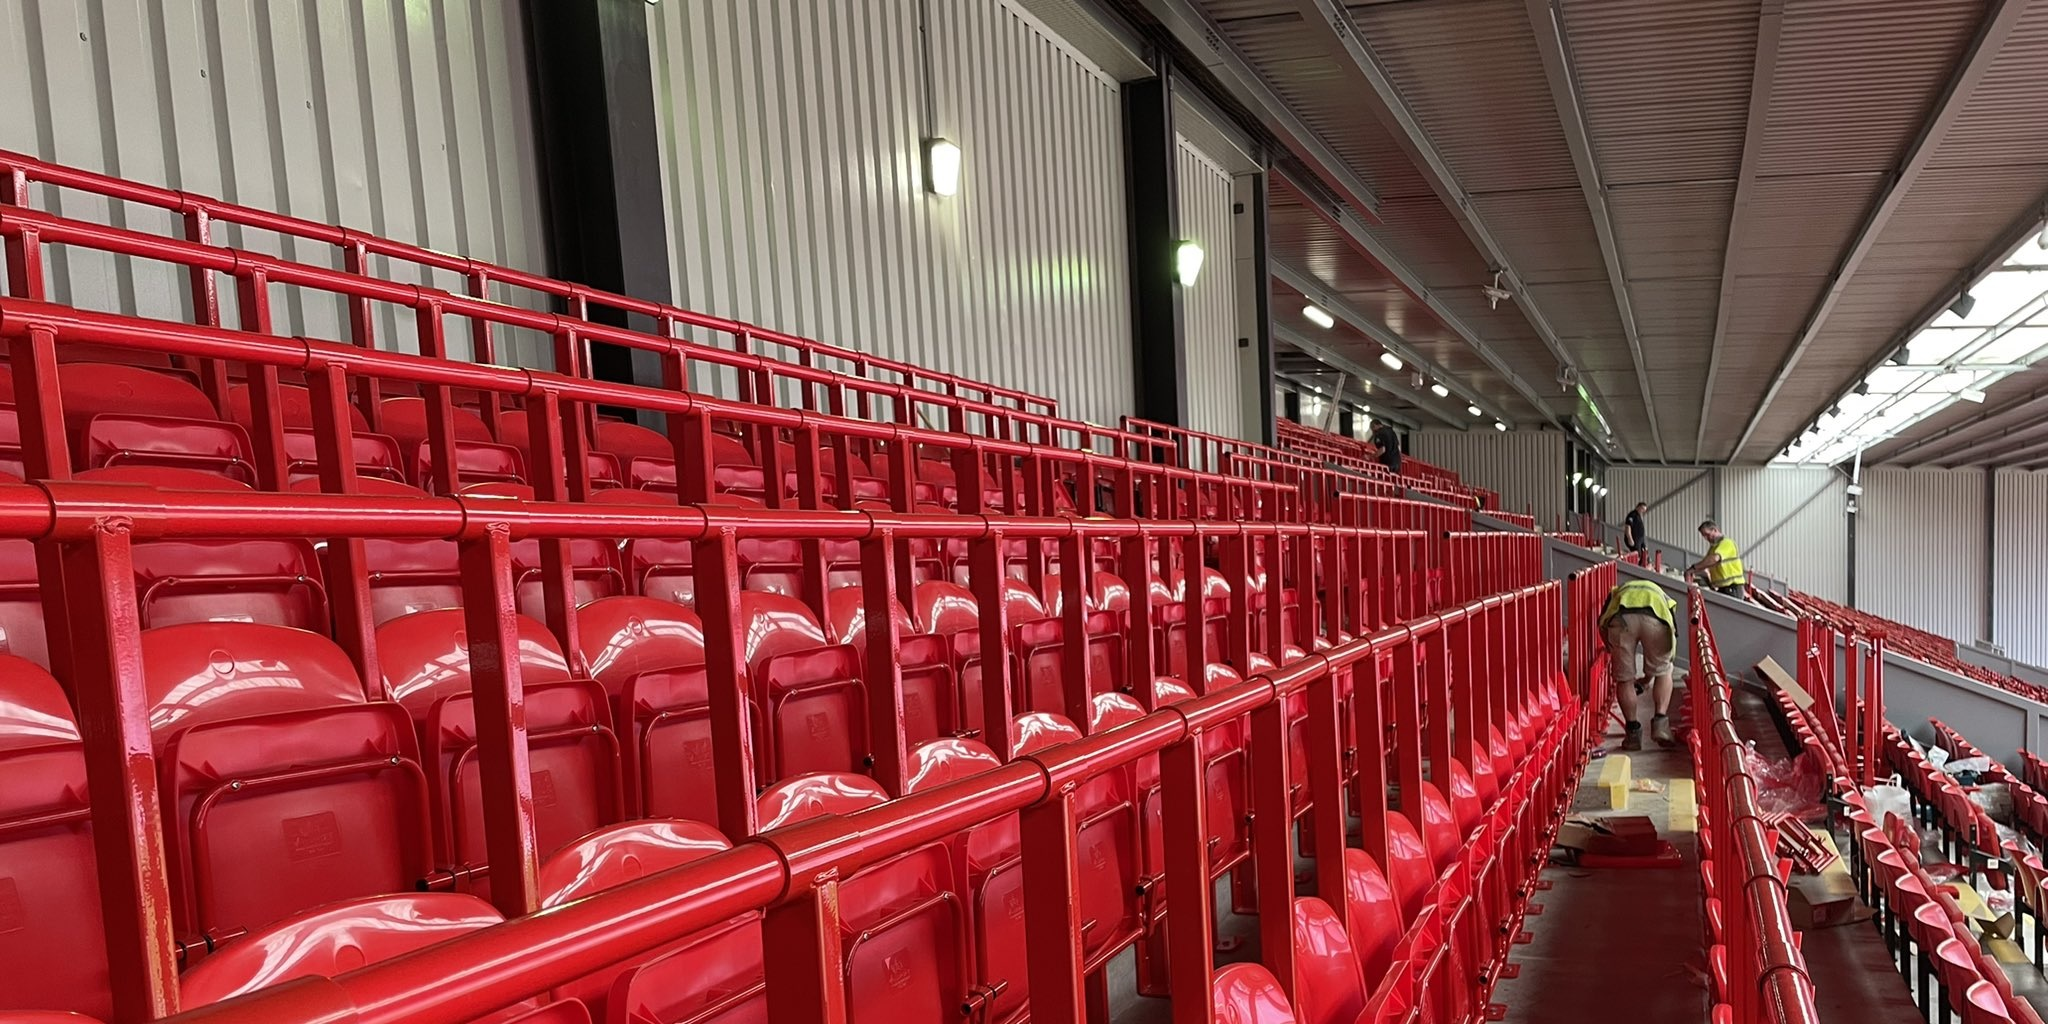 (Photos) Safety rails installed at Anfield ahead of the 2021/22 season